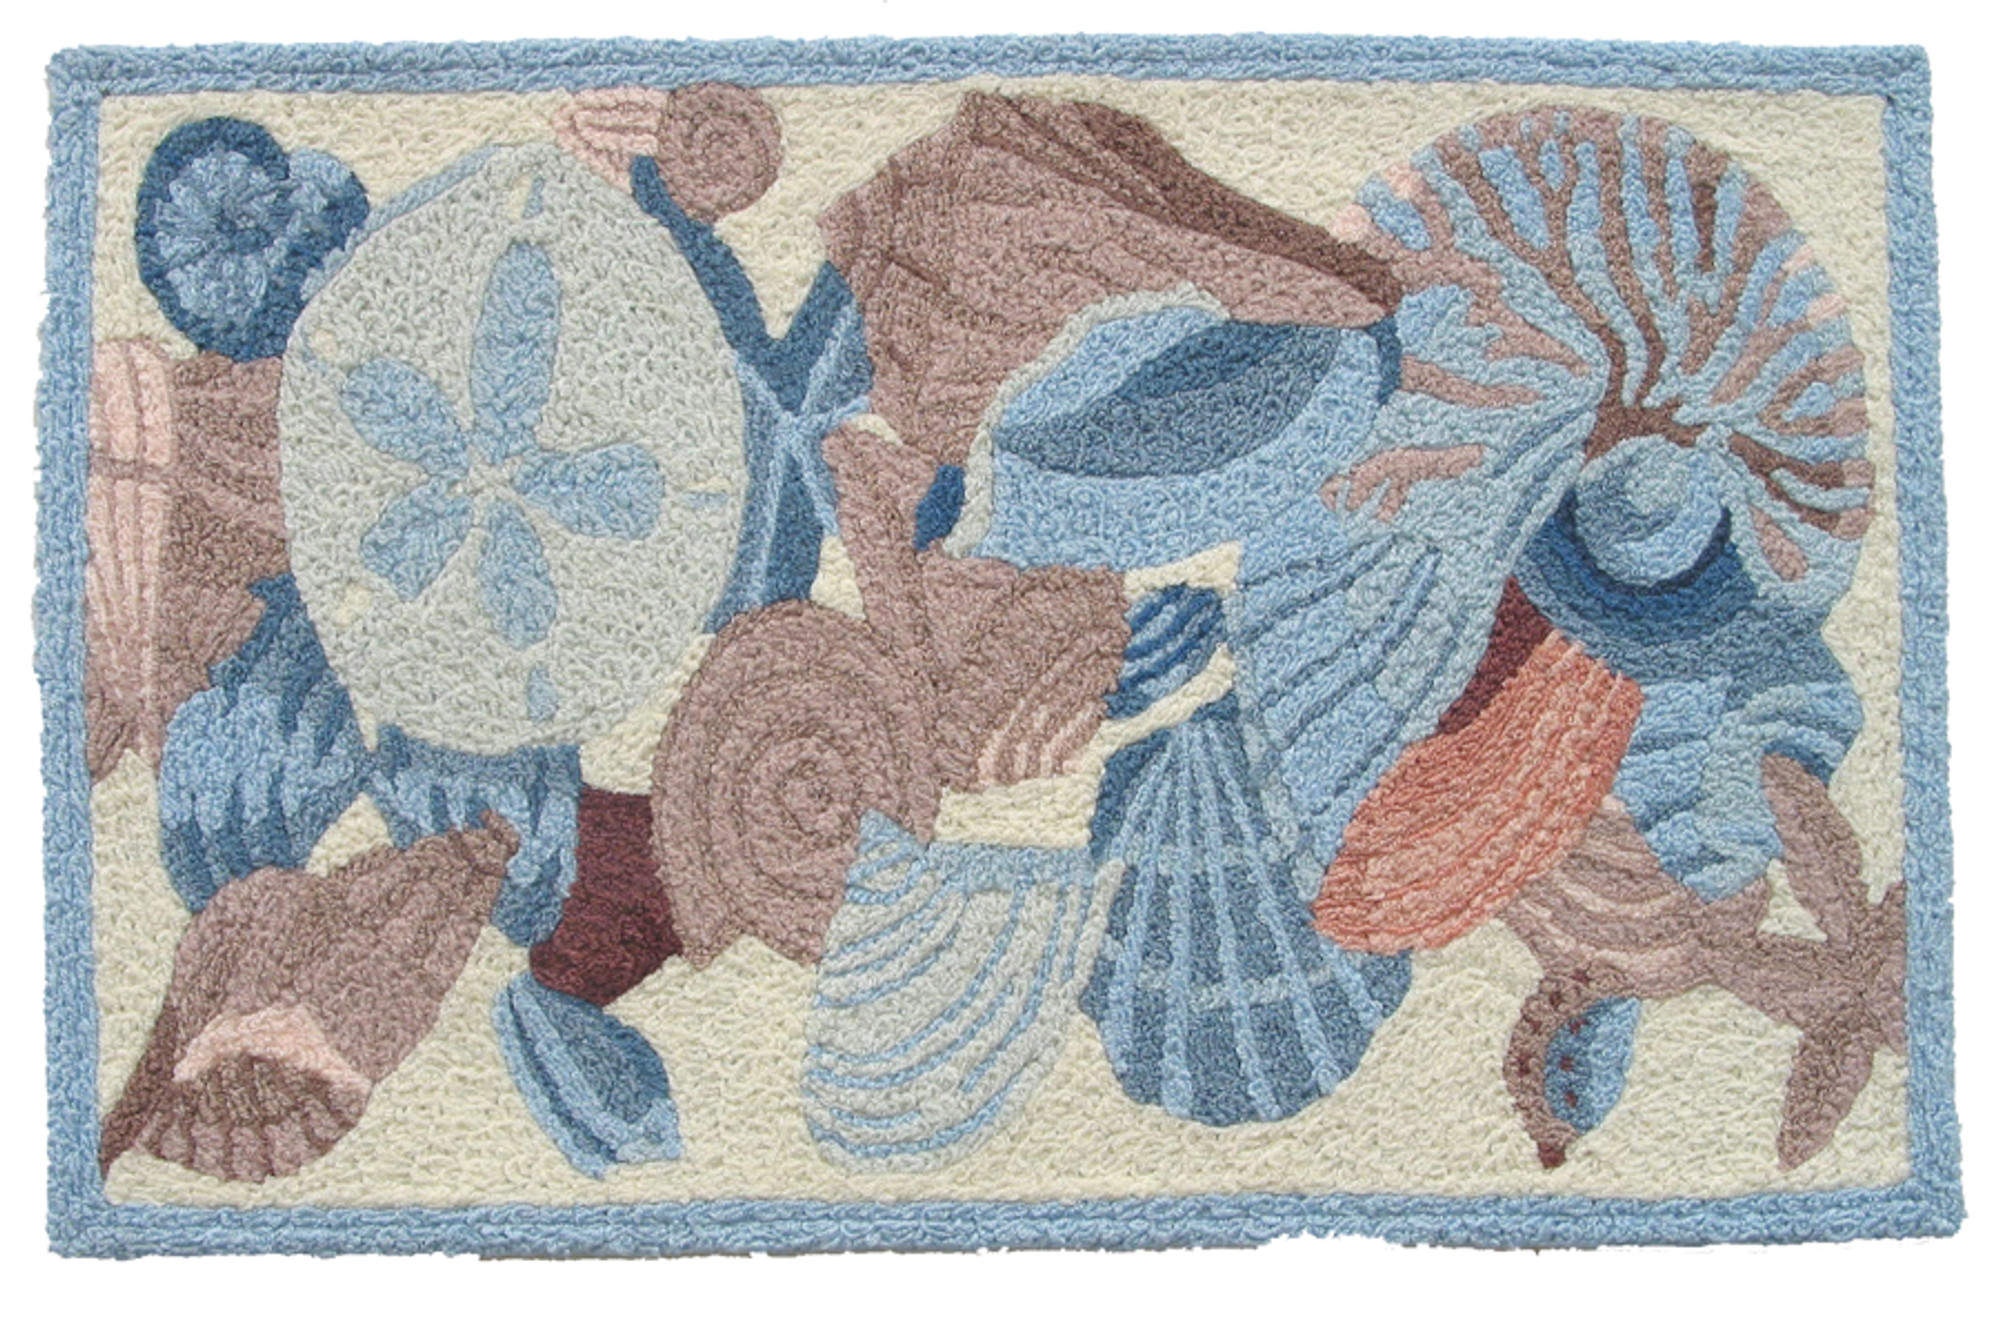 A colorful, machine washable Jellybean® rug featuring shells and coral!